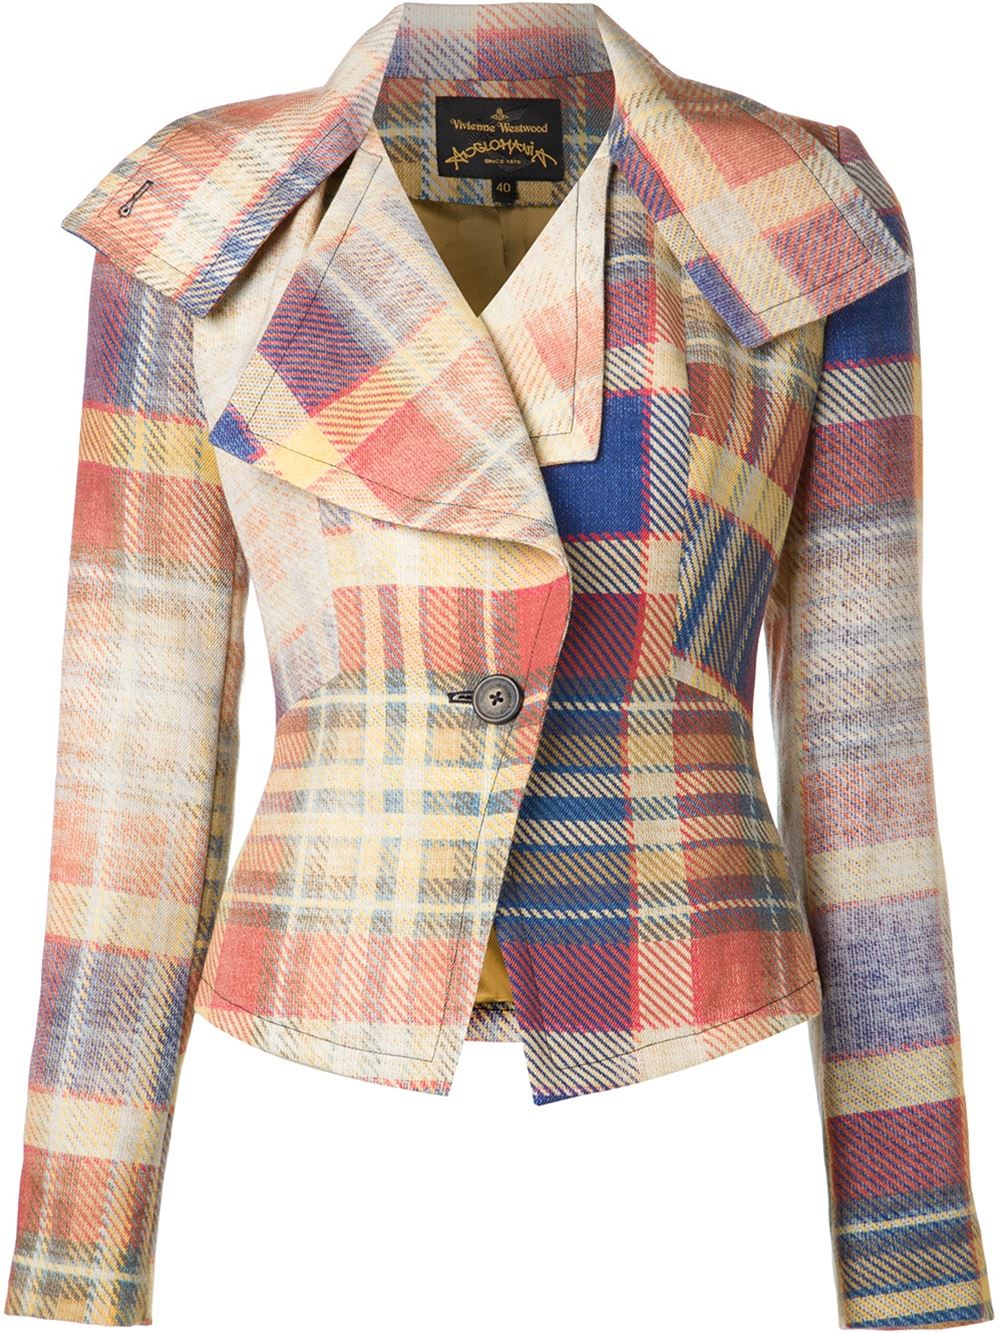 Lyst - Vivienne Westwood Anglomania  Whisper  Jacket in Blue 7826ee1e3